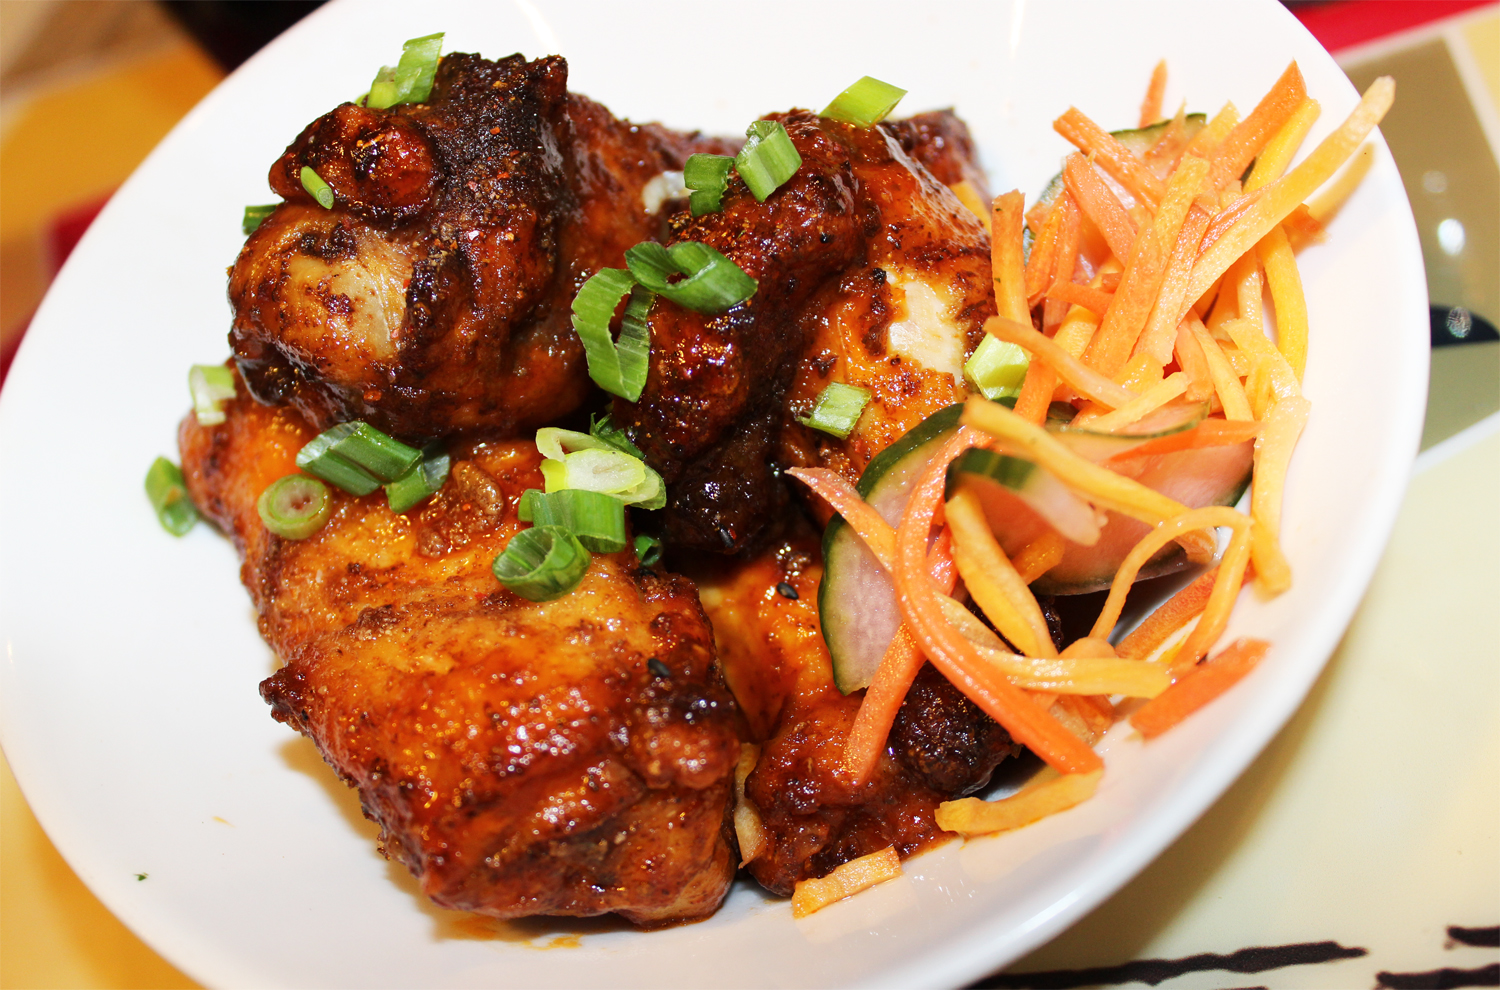 A dry spice rub lends unique flavor to spicy wings at Legacy Brewing Tap & Kitchen in Miramar